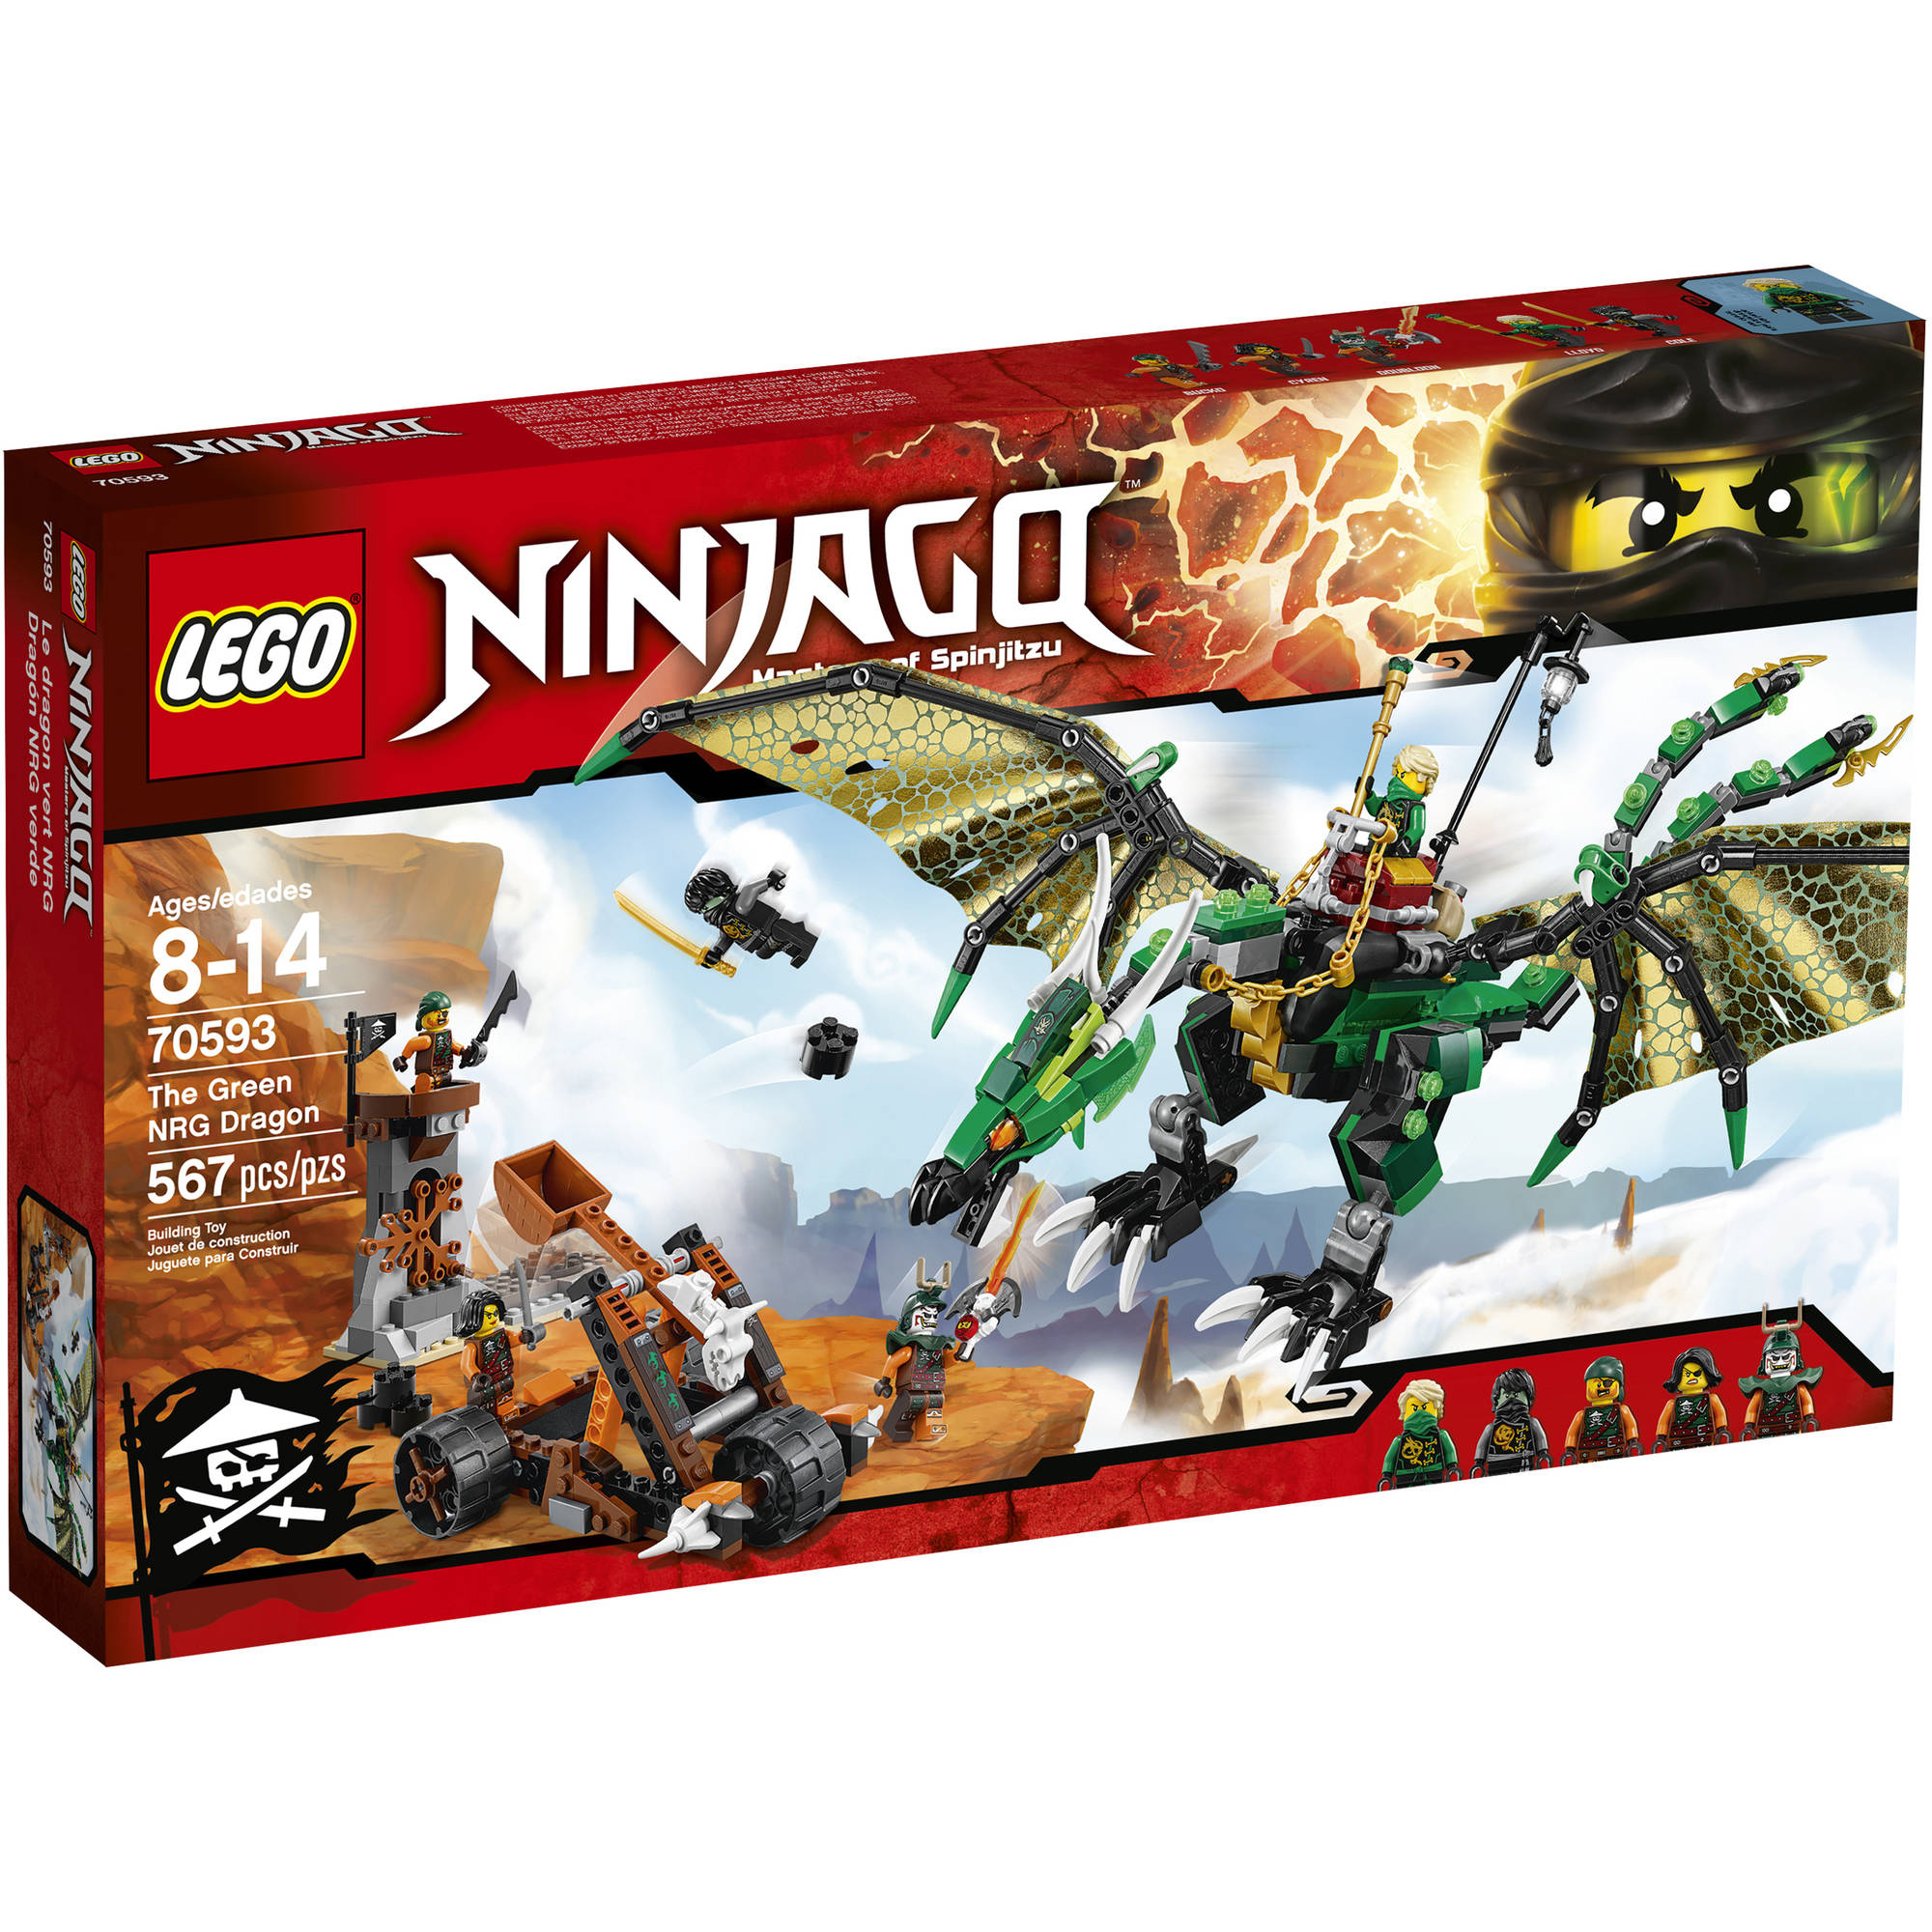 LEGO NINJAGO The Green NRG Dragon, 70593